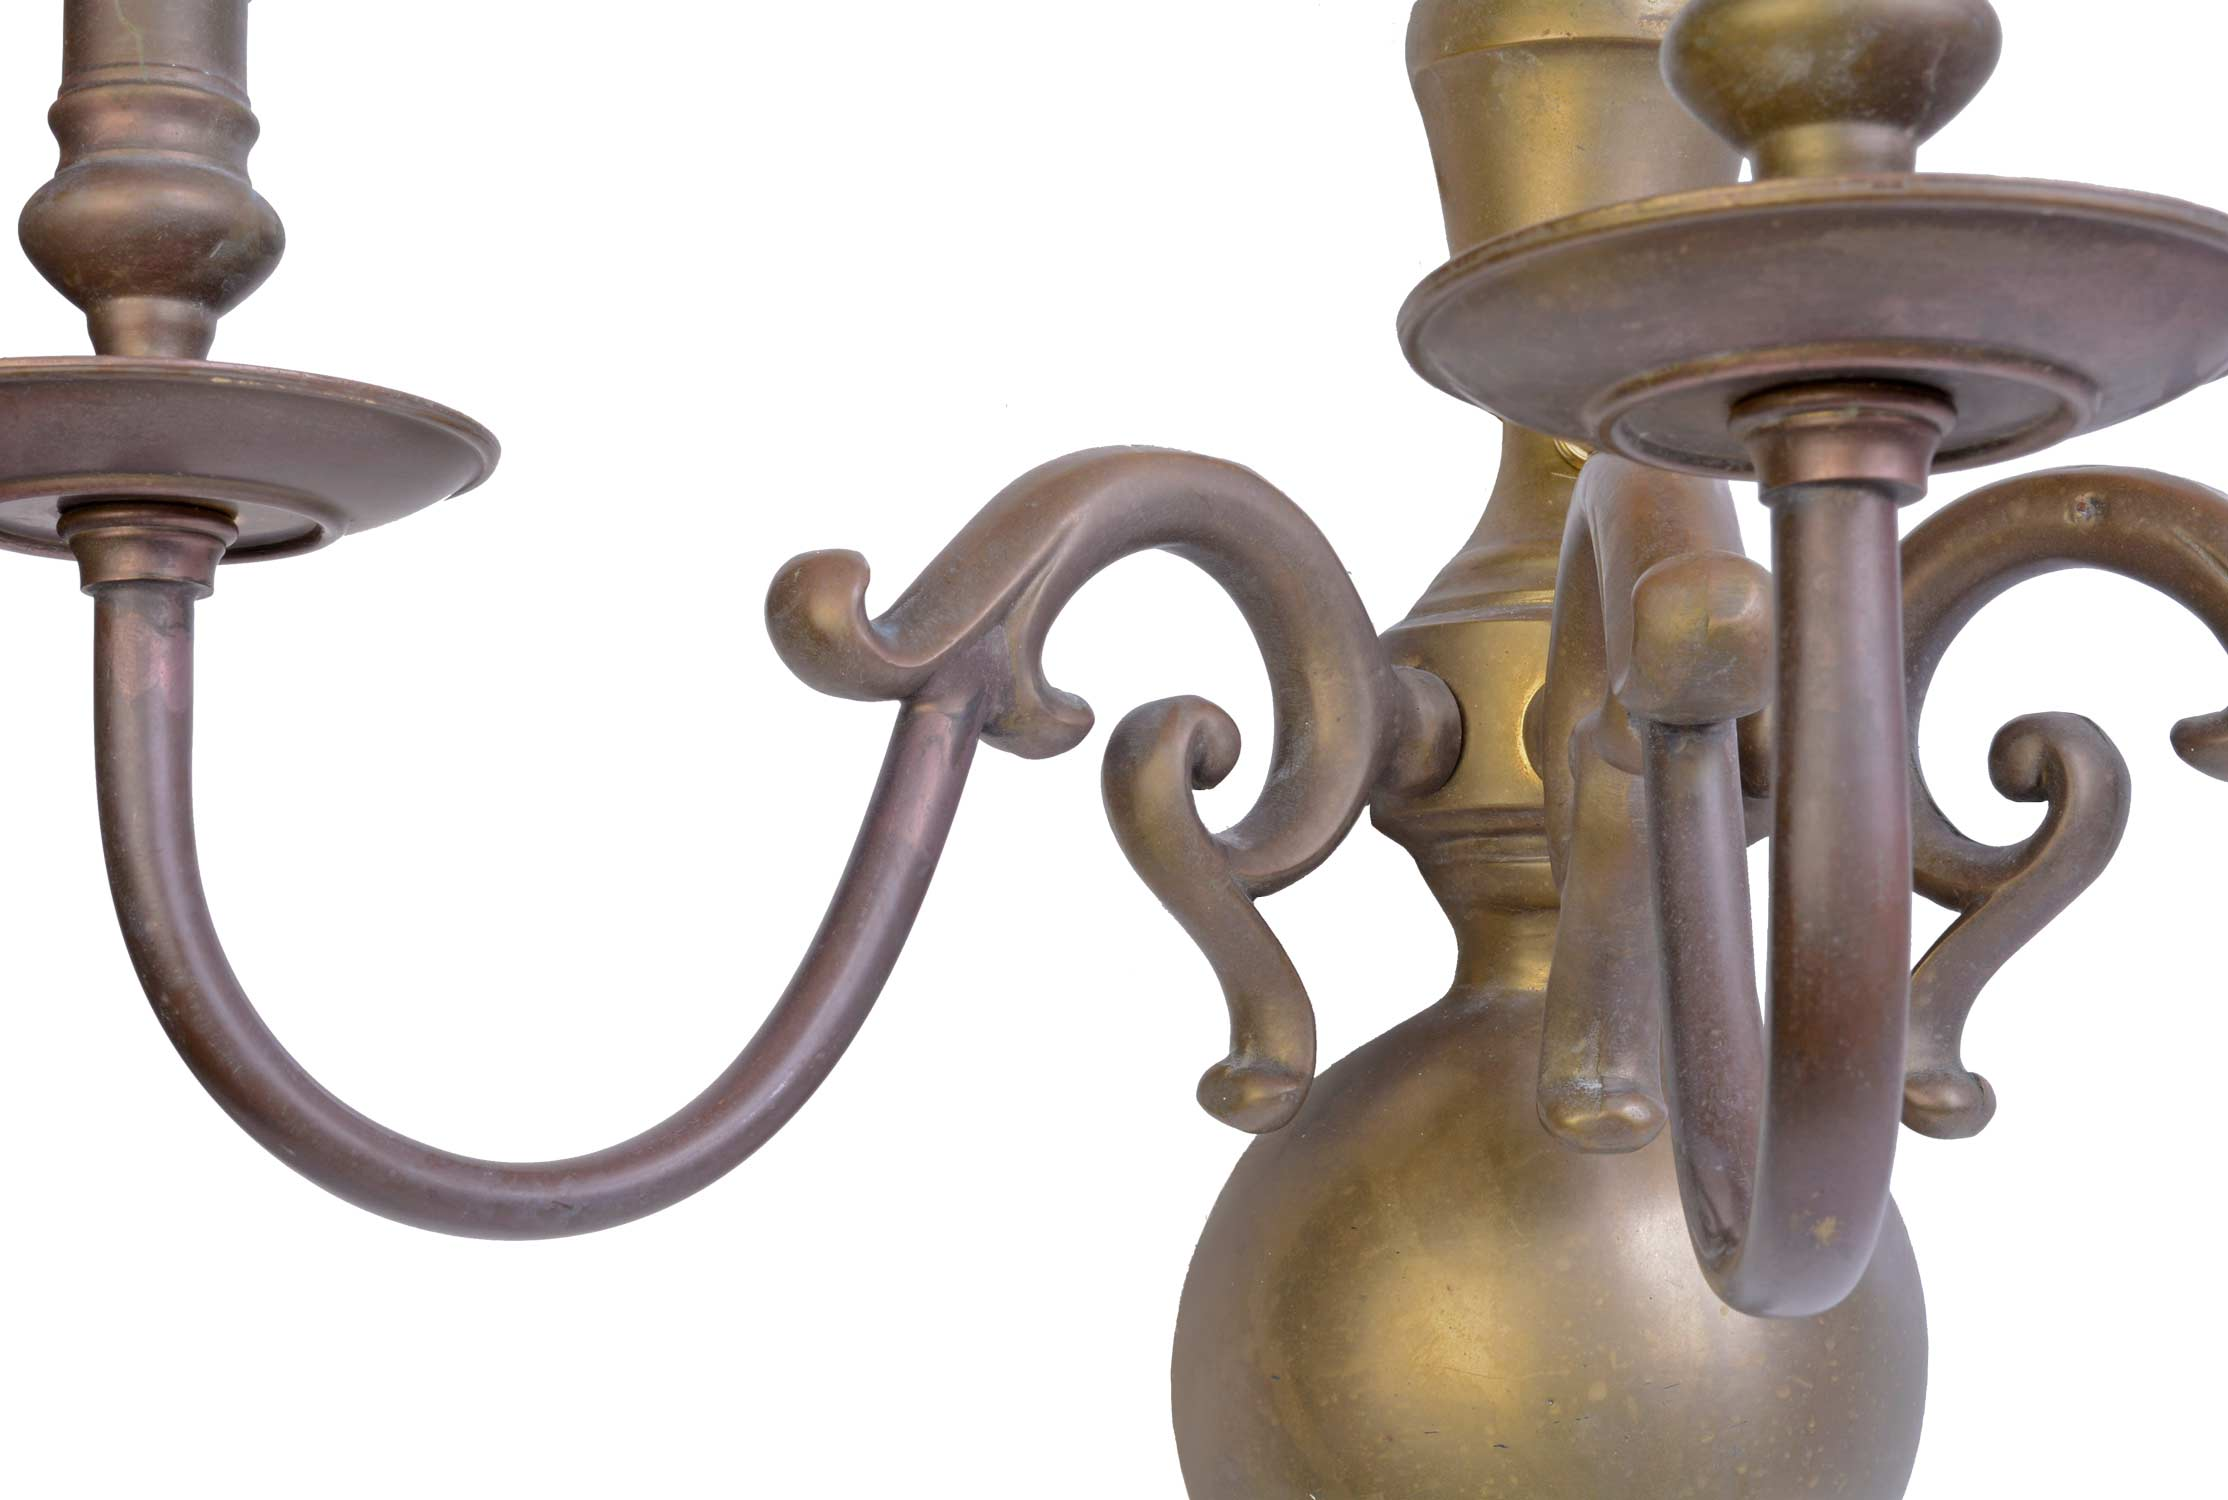 45719-large-colonial-thre-arm-brass-sconce-arm-detail.jpg